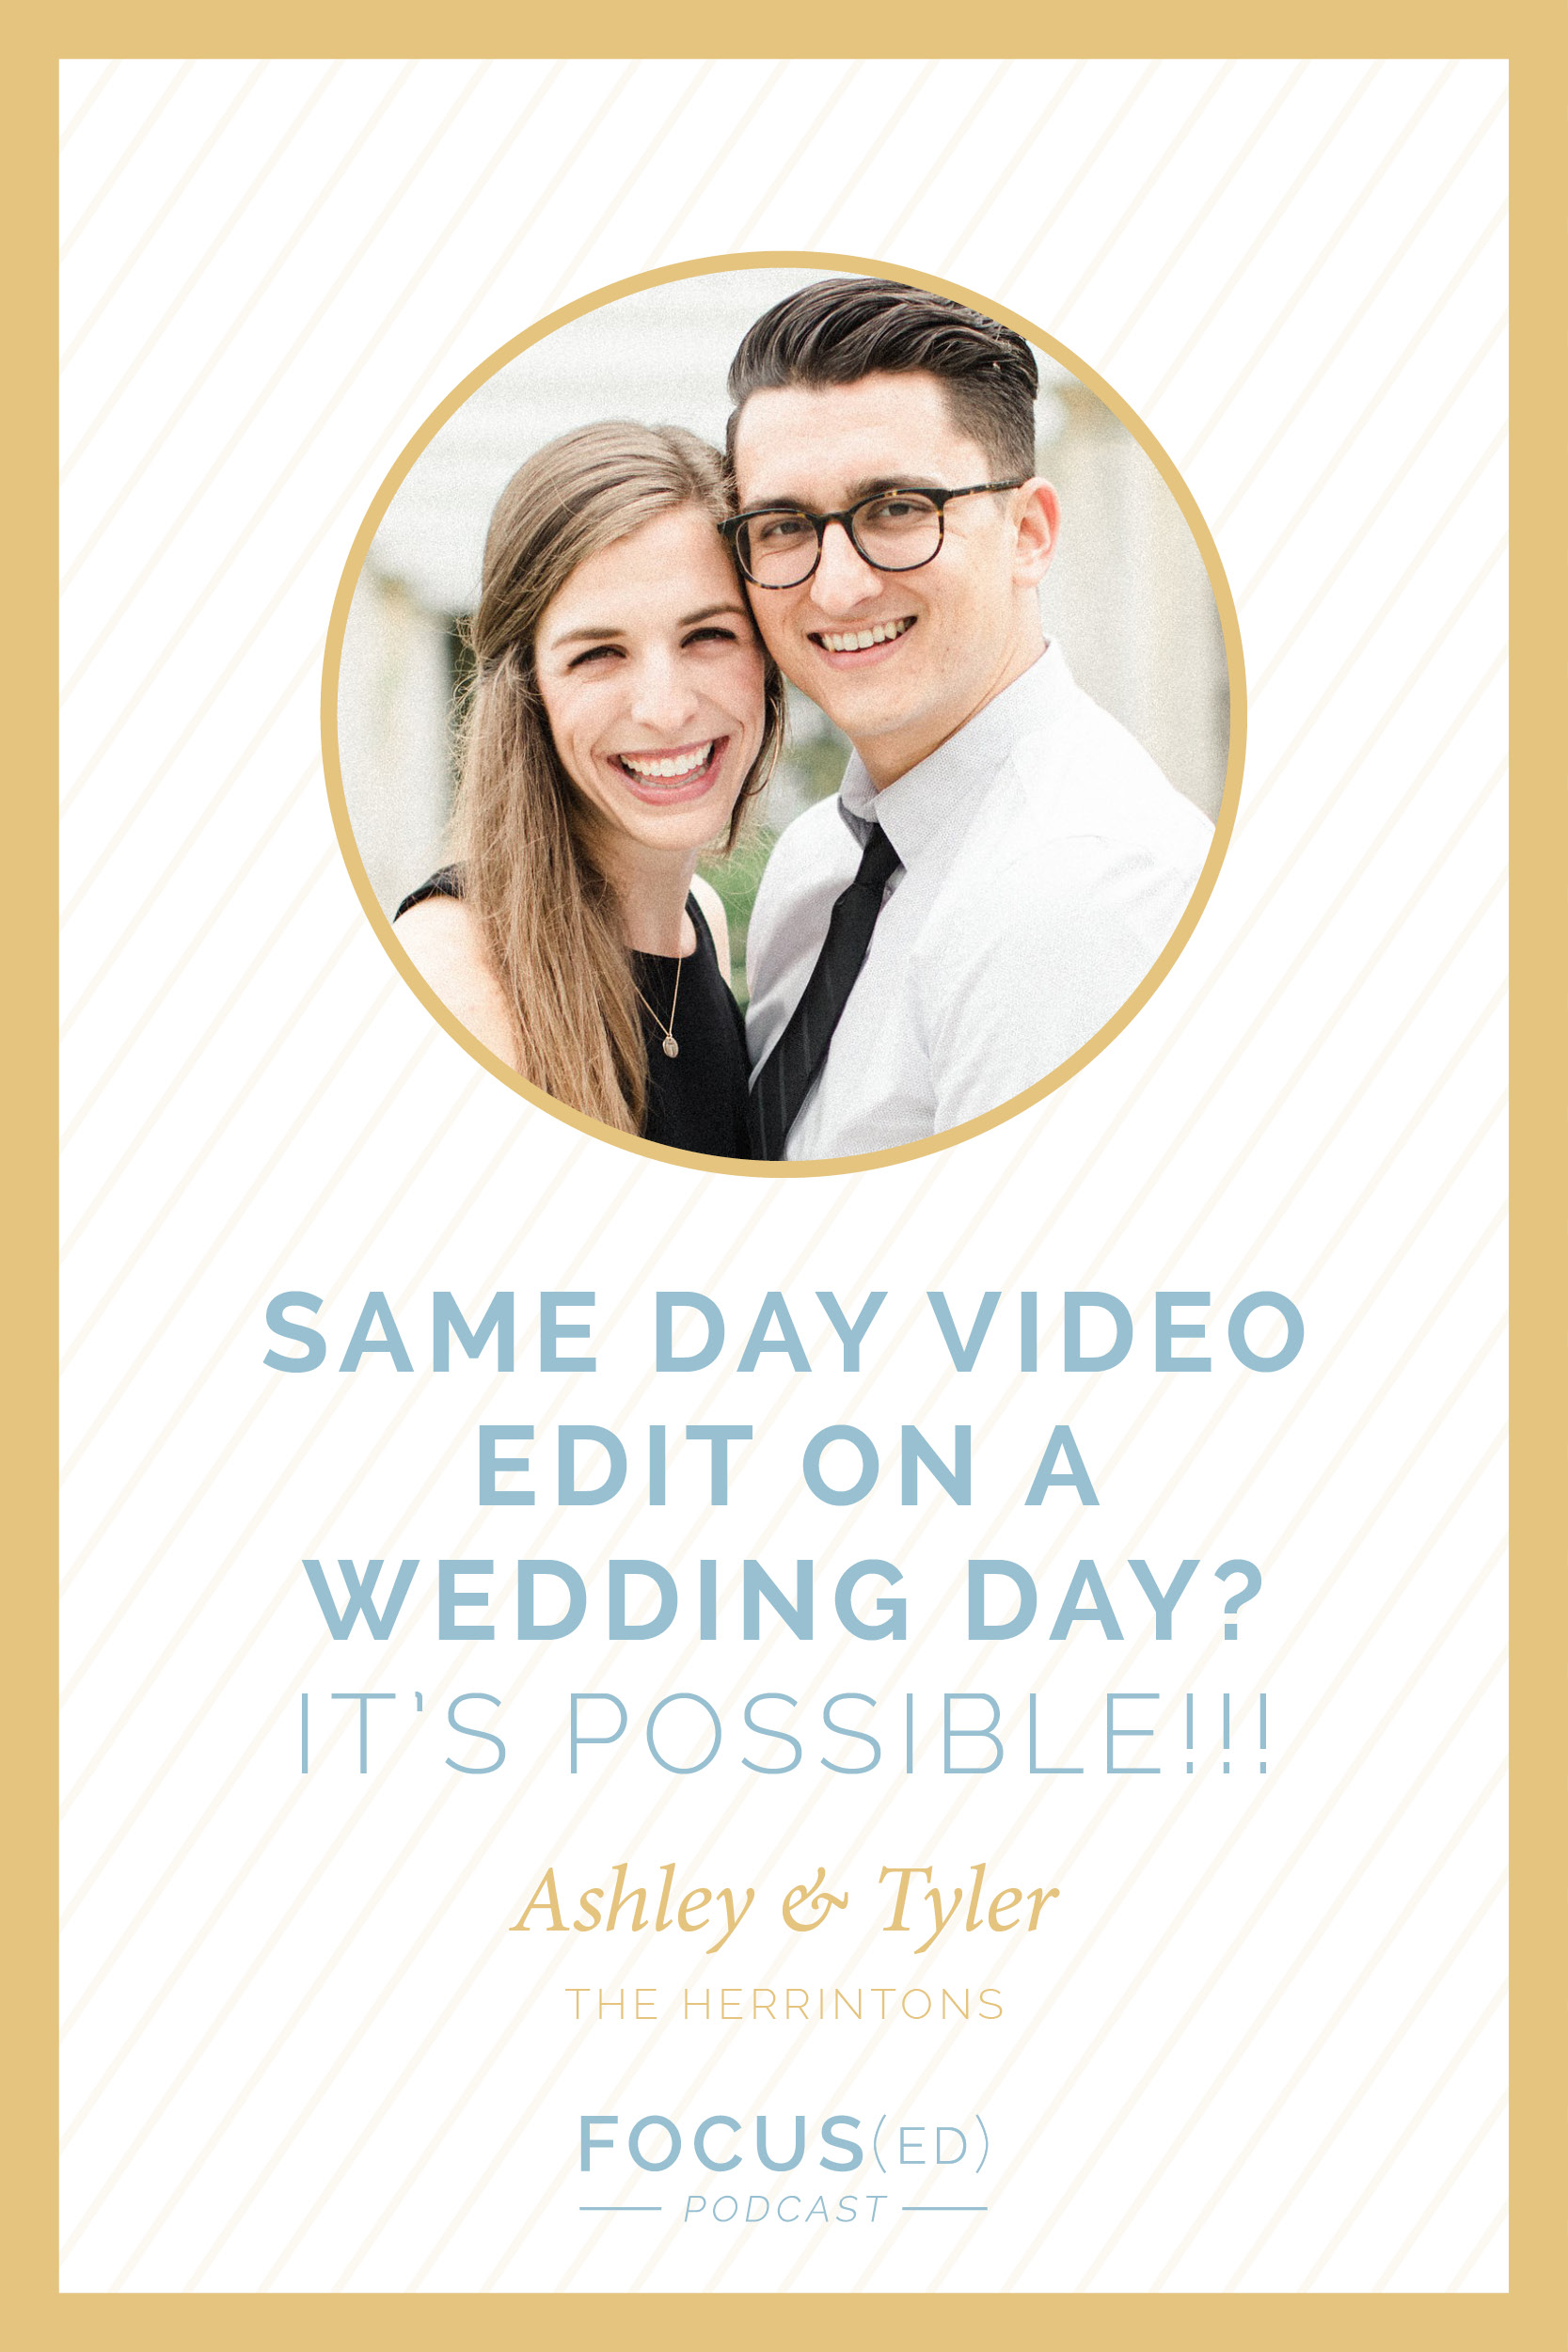 Same Day Video Edit on a Wedding Day with the Herringtons  |  Focus(ed) Podcast 066